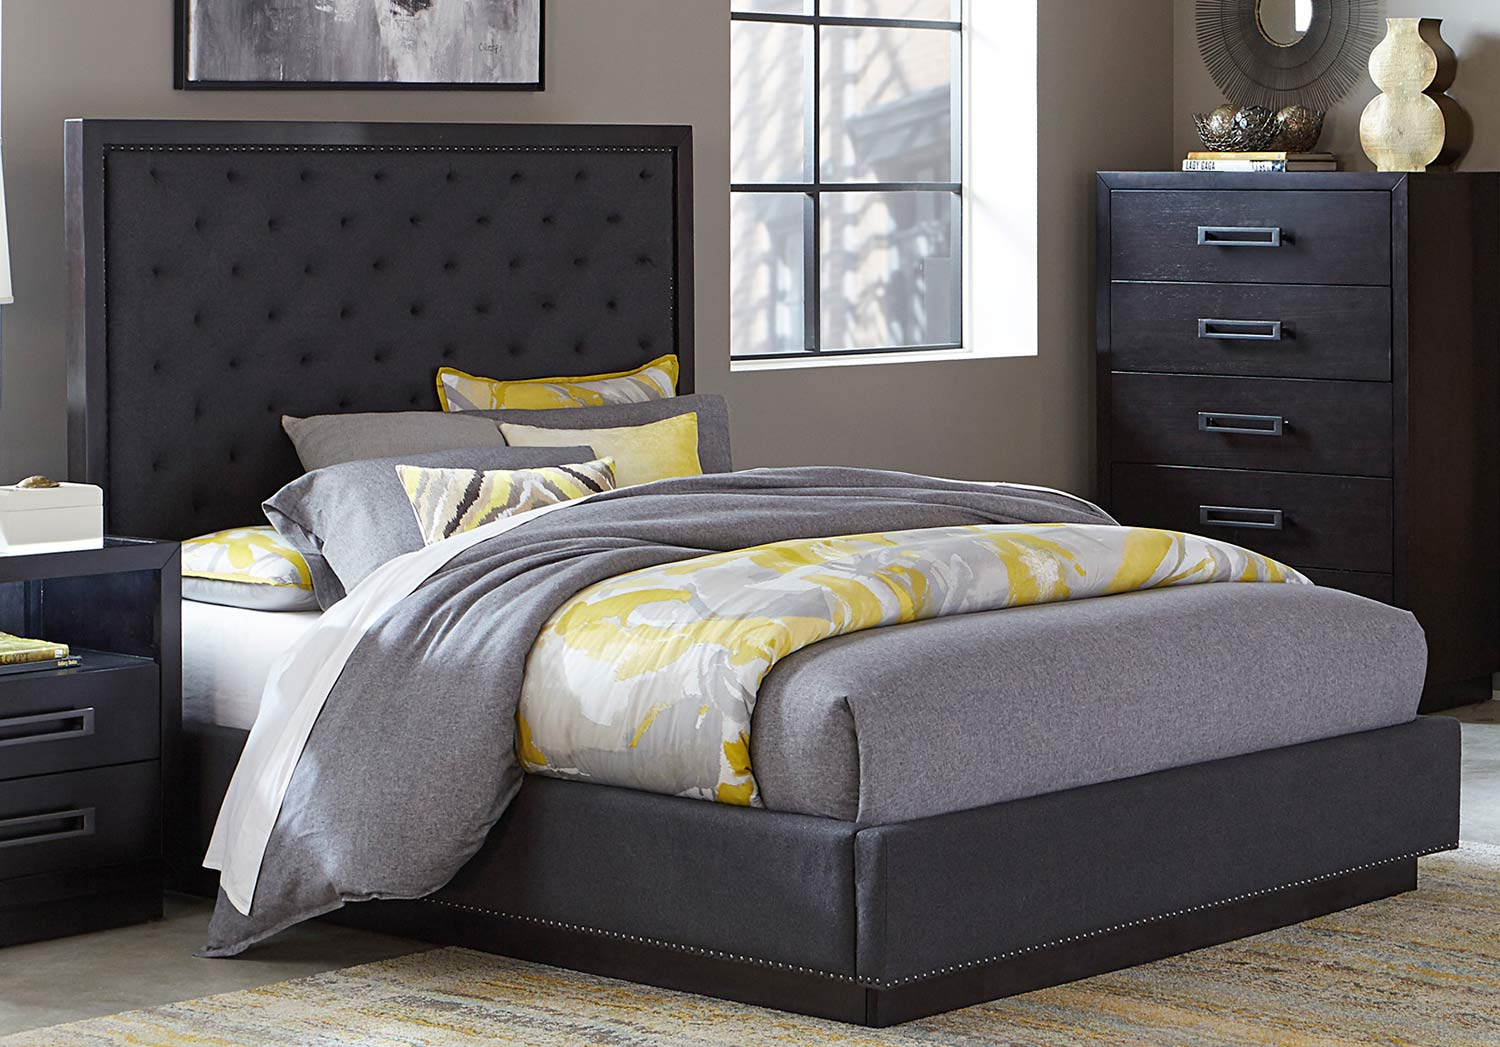 Homelegance Larchmont Upholstered Bed - Charcoal Finish over Ash Veneer